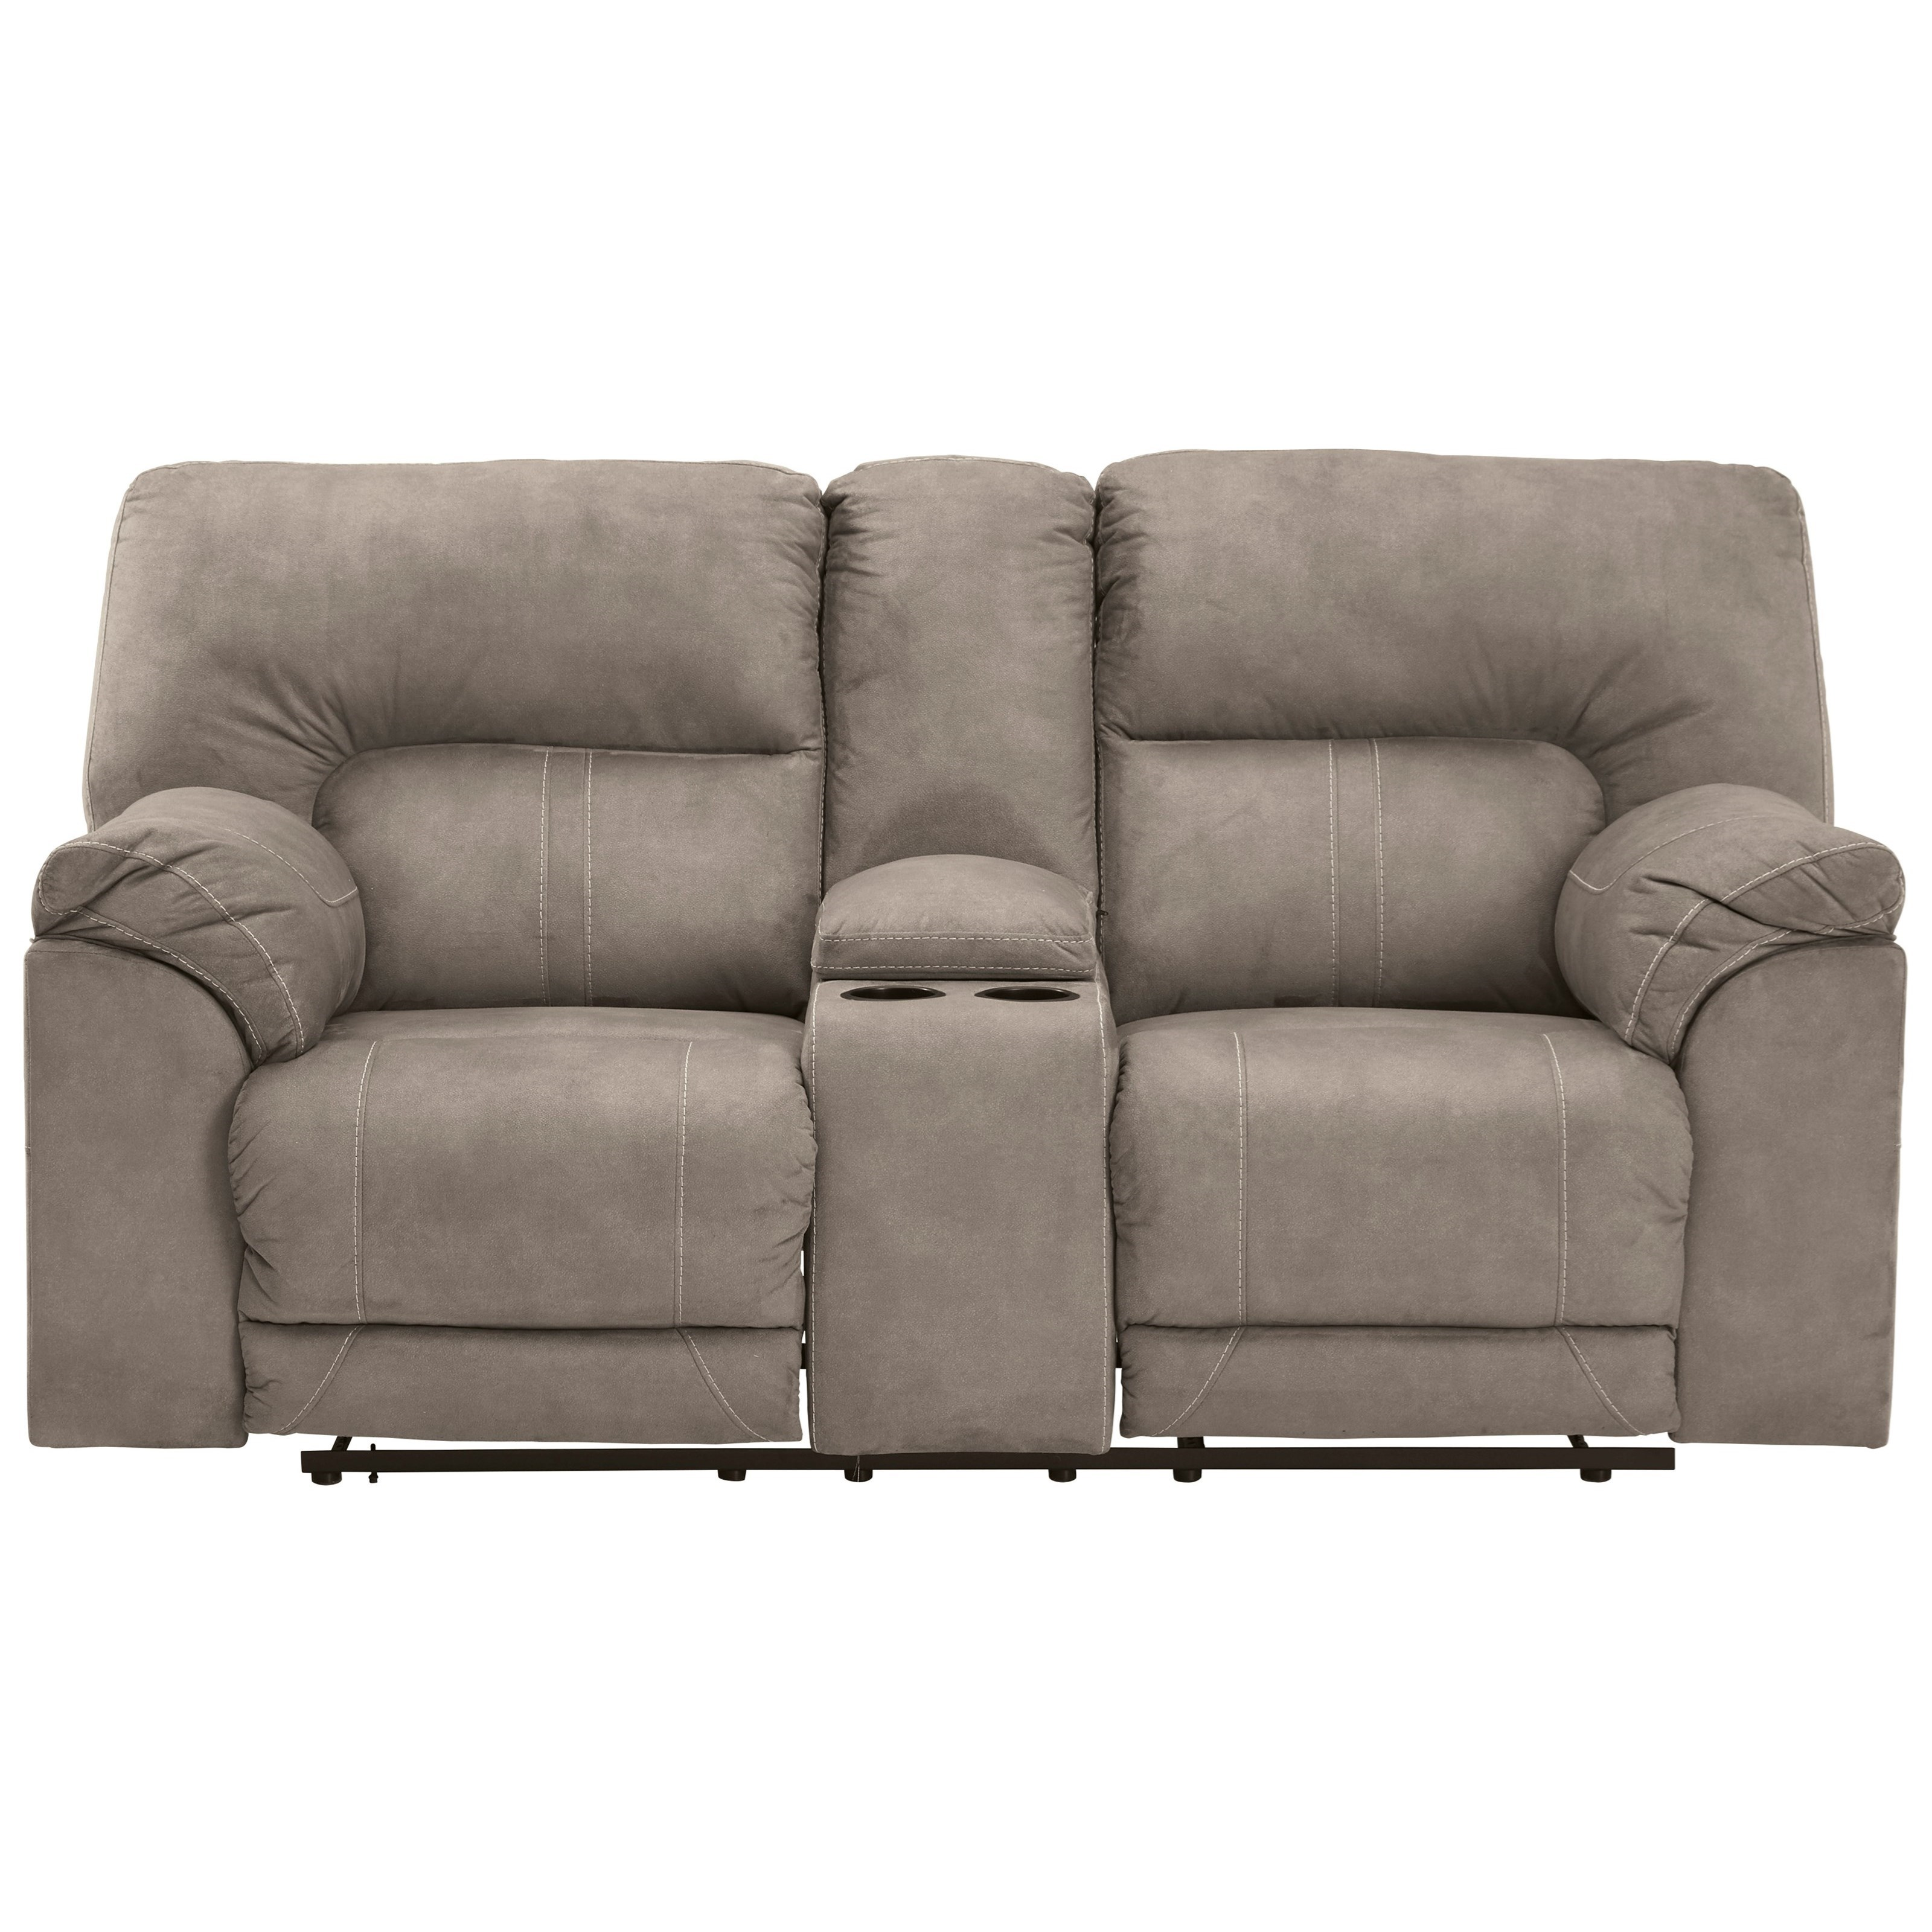 Cavalcade Double Reclining Power Loveseat with Console by Benchcraft at Miller Waldrop Furniture and Decor